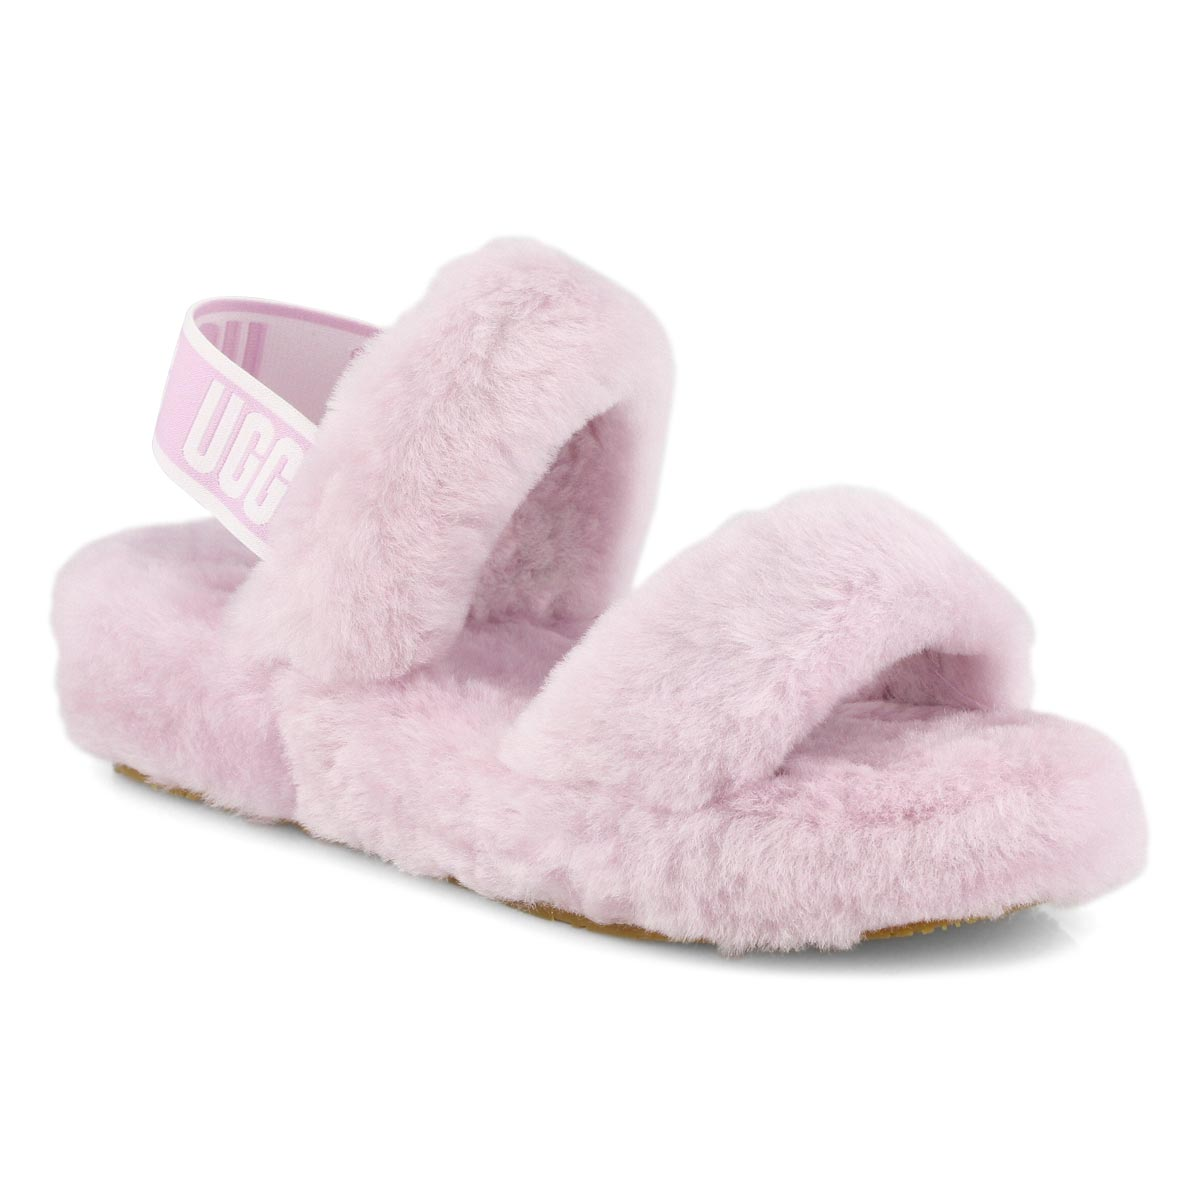 Lds Oh Yeah pink sheepskin slipper